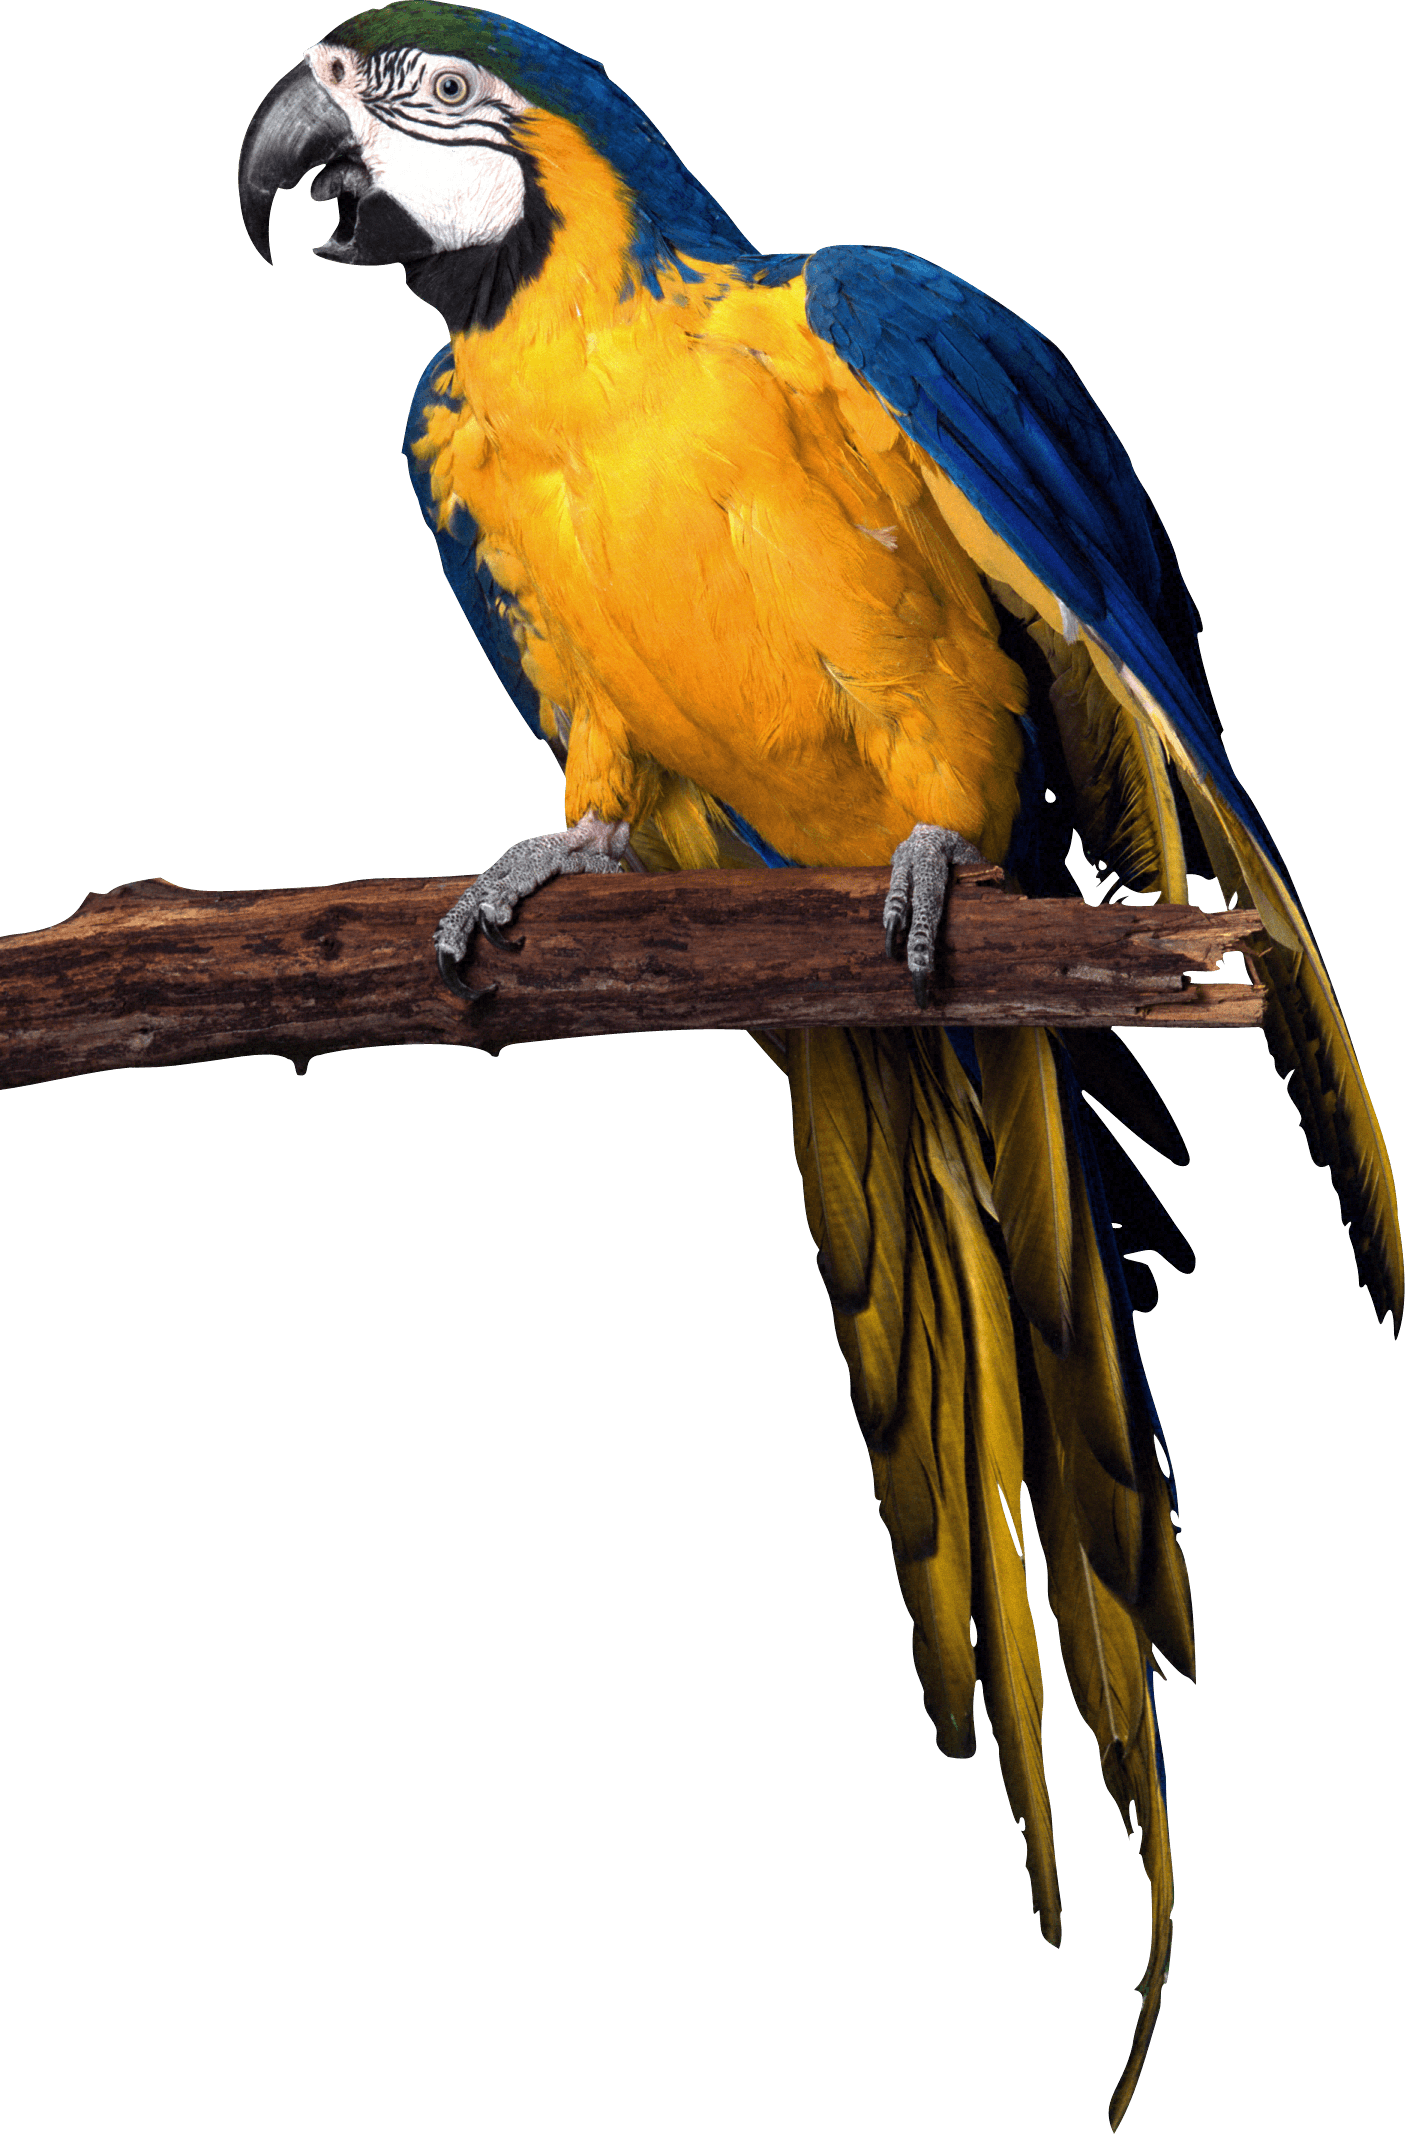 Pirate parrot png. Yellow blue image purepng